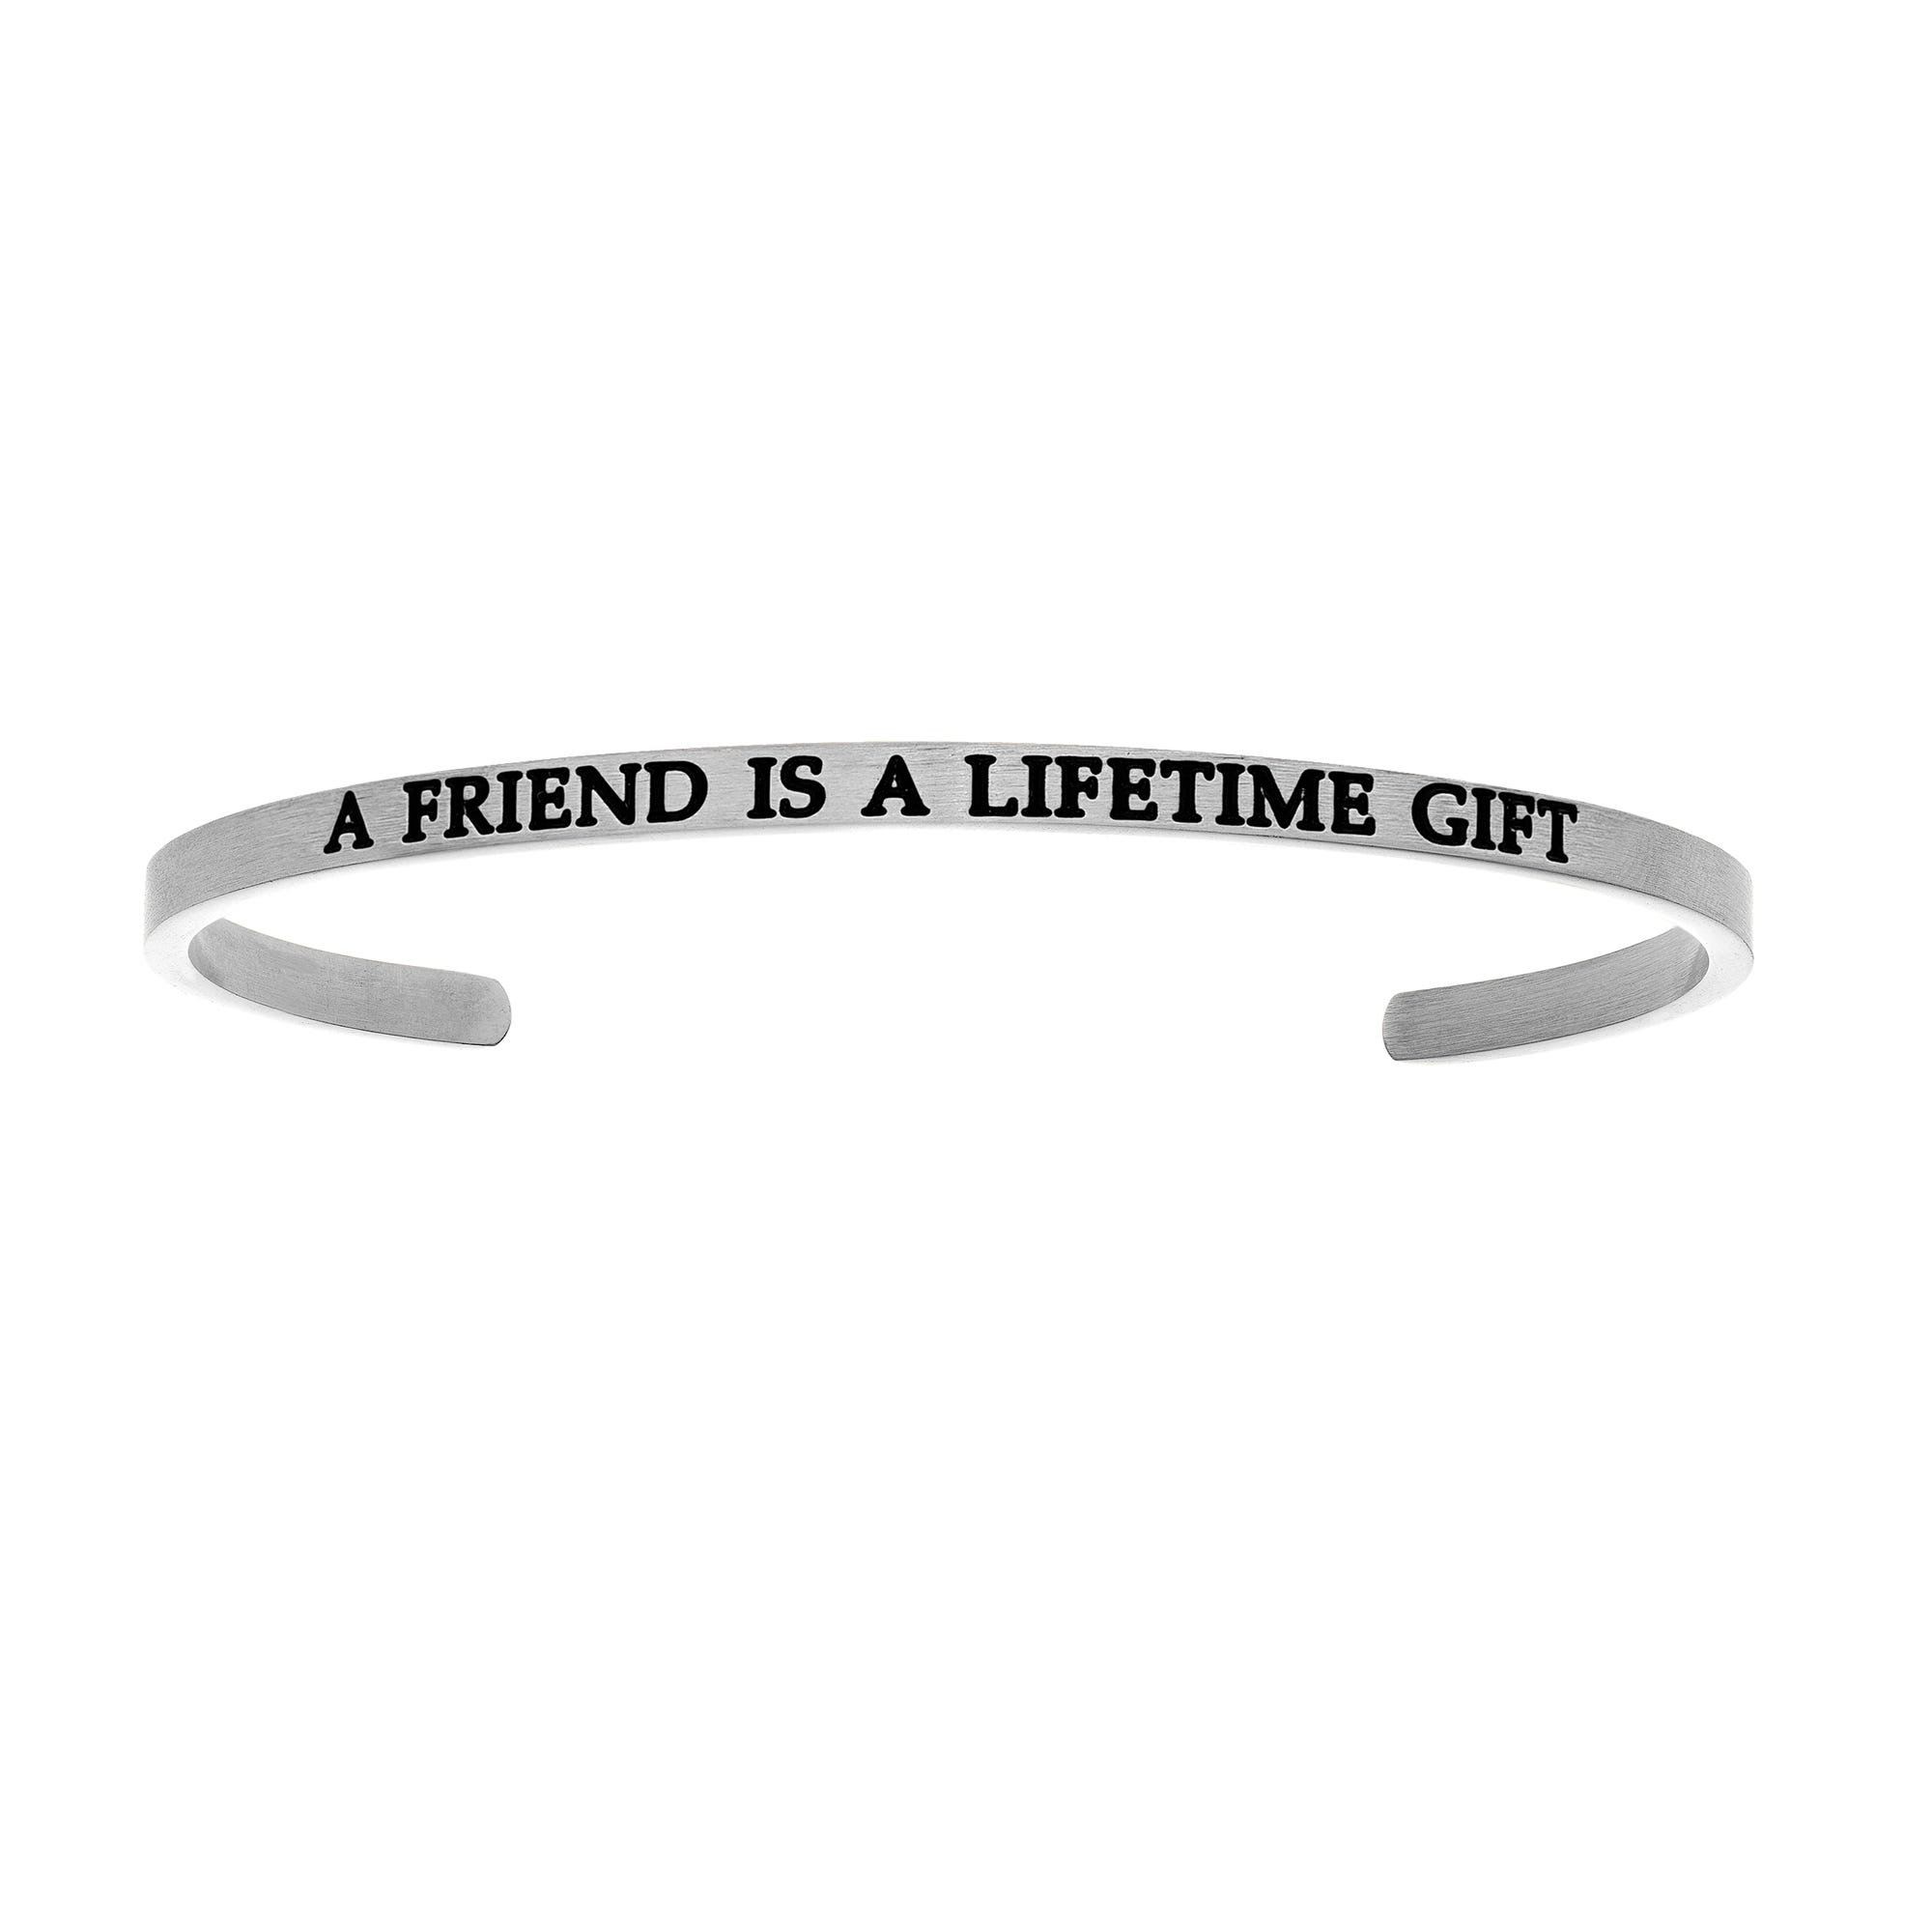 A Friend Is A Lifetime. Intuitions Cuff Bracelet in White Stainless Steel